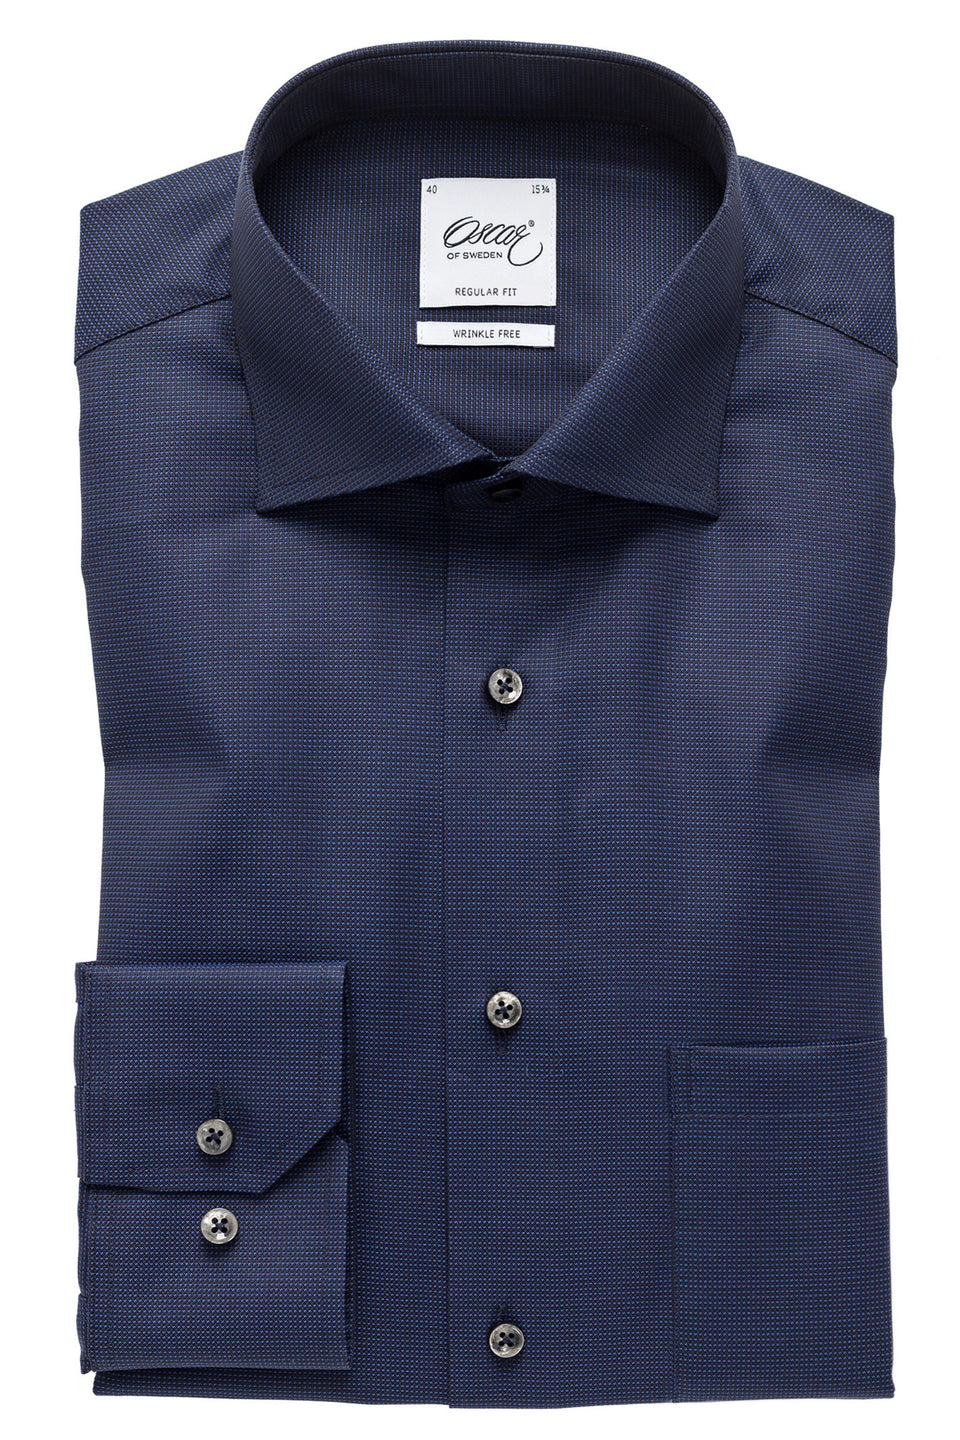 Dark blue regular fit shirt